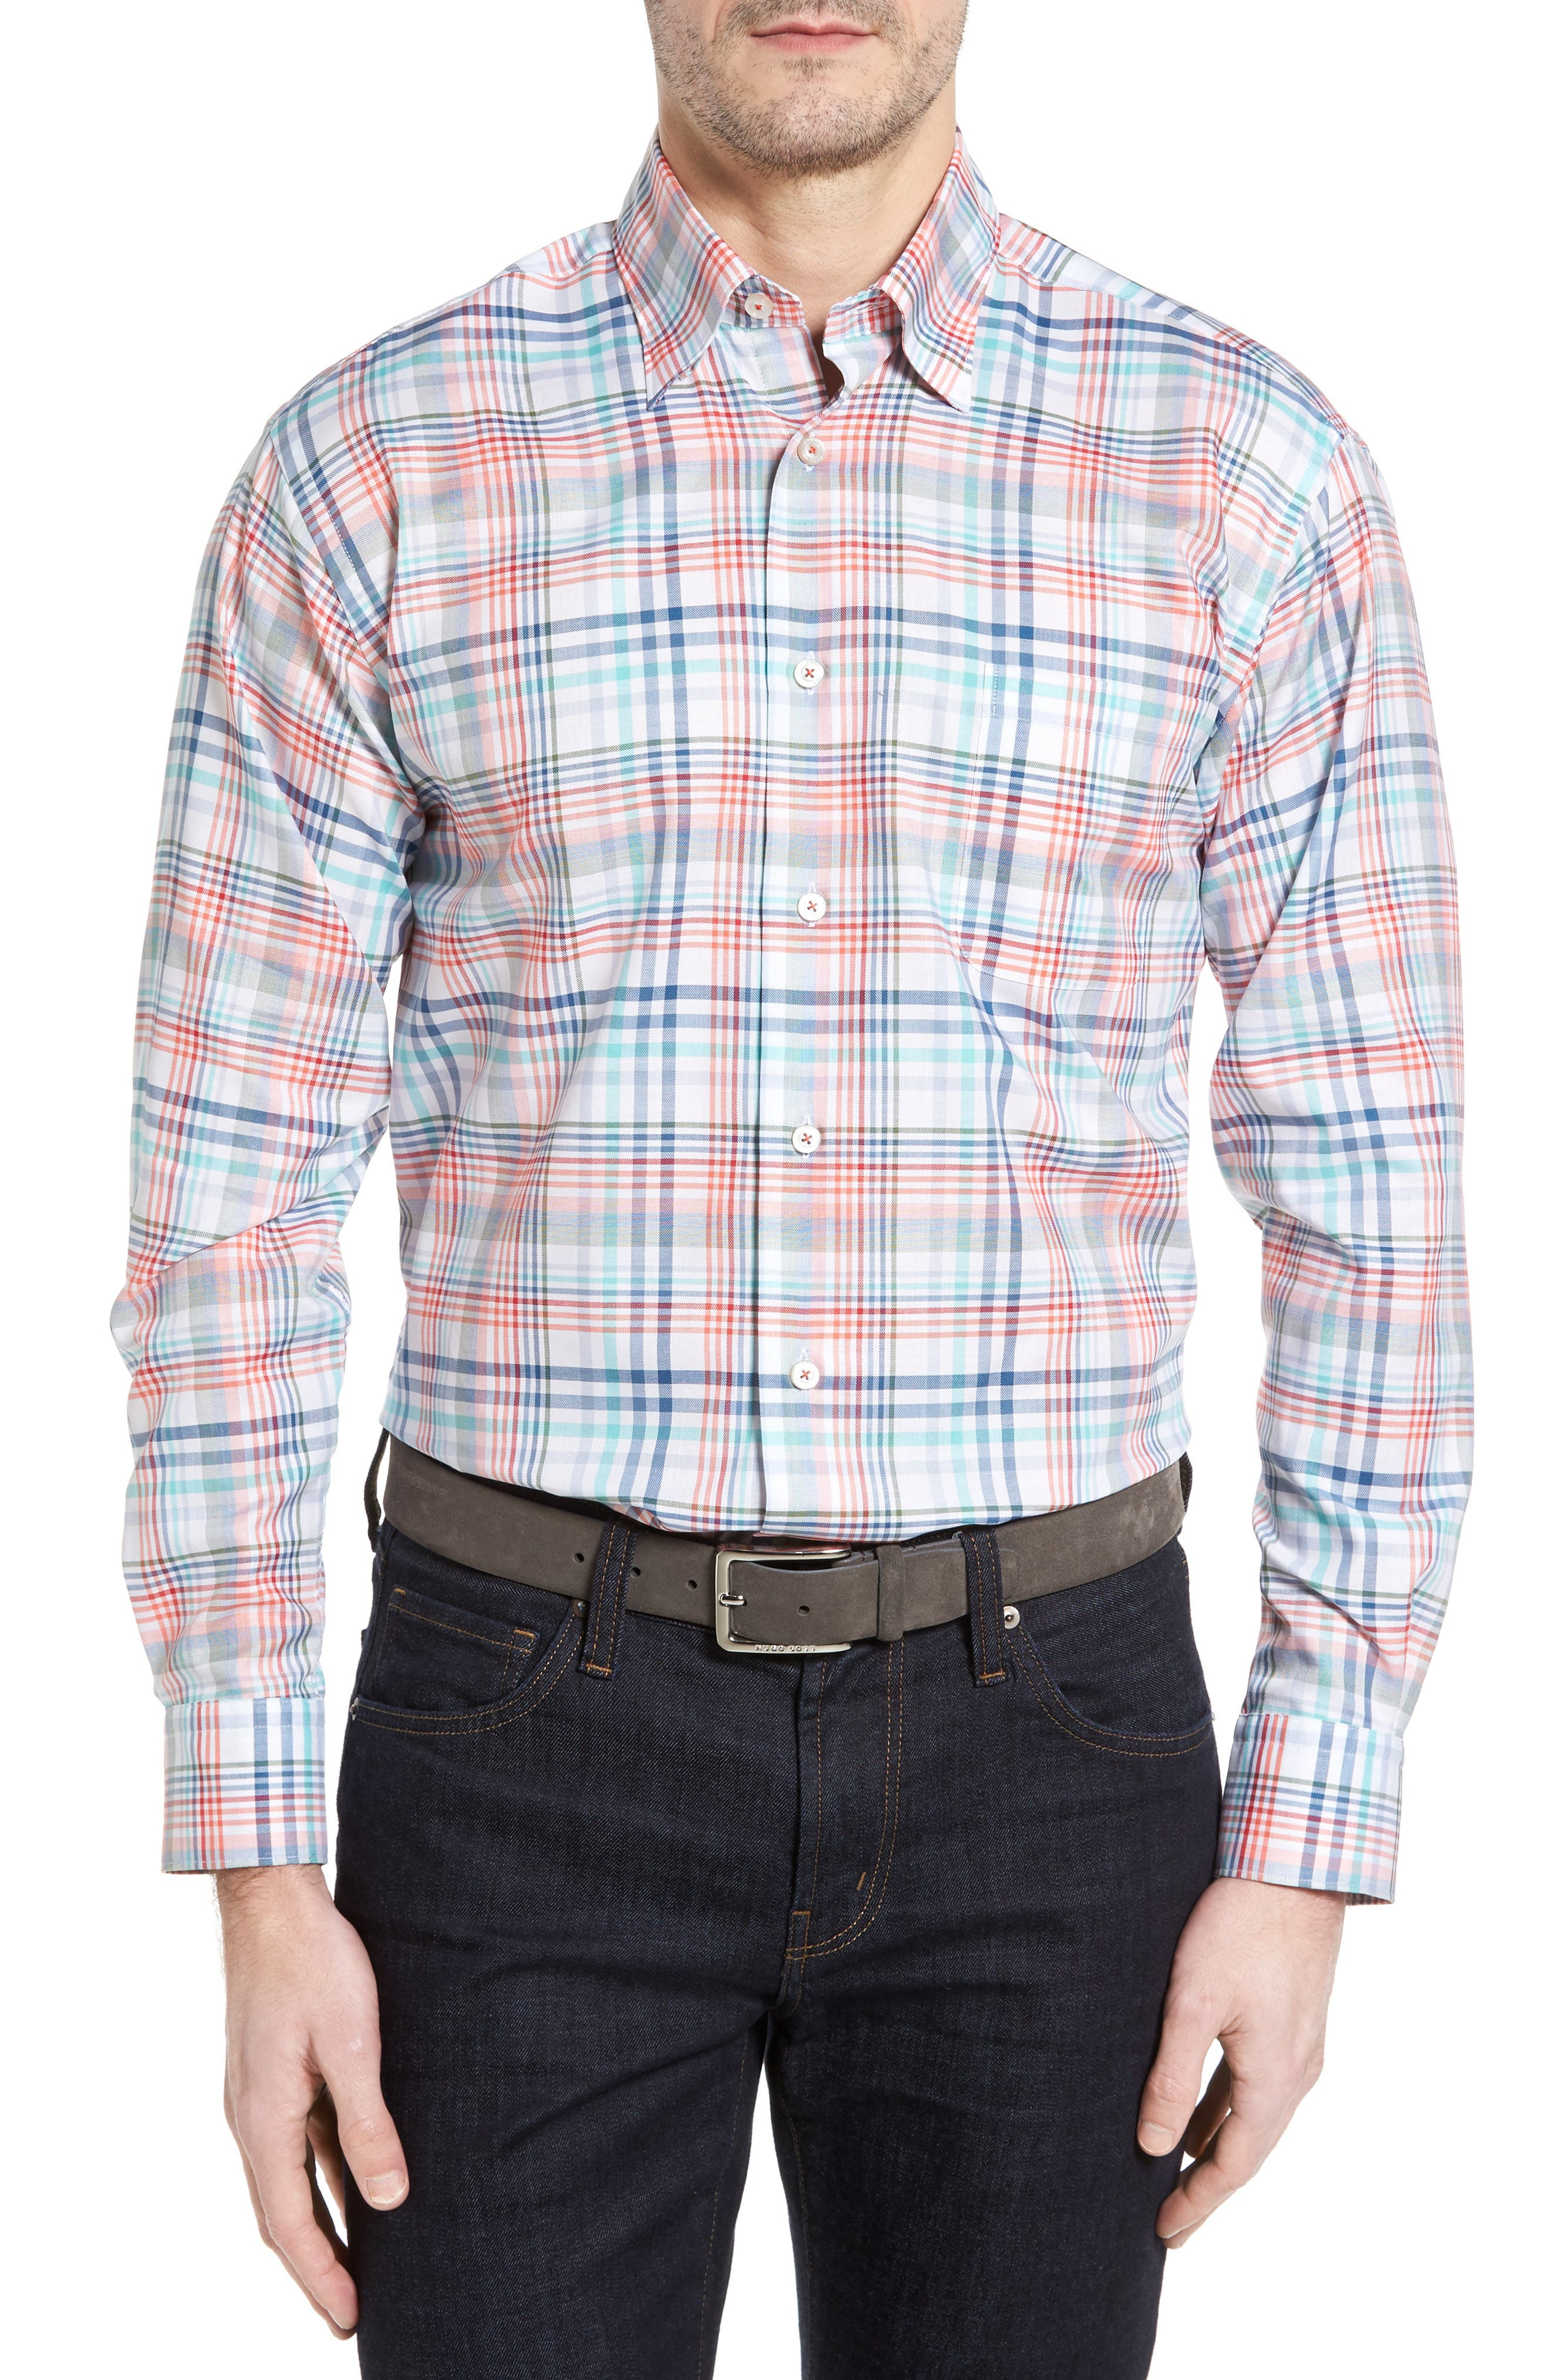 Main Image - Robert Talbott Anderson Classic Fit Plaid Twill Sport Shirt